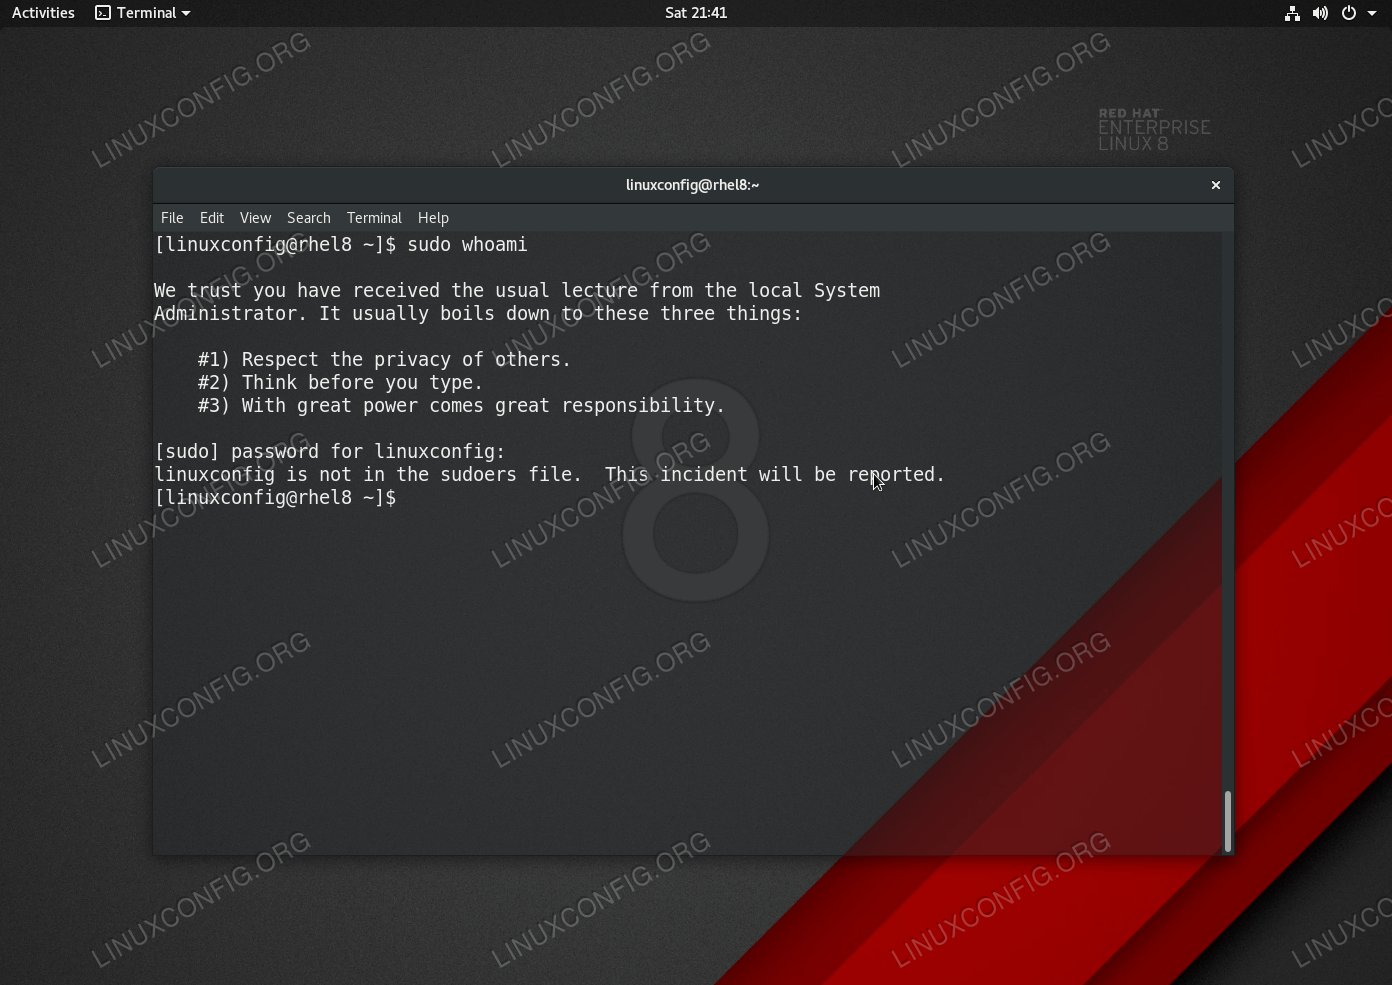 User is not in the sudoers file error message on RHEL 8 / CentOS 8 Linux